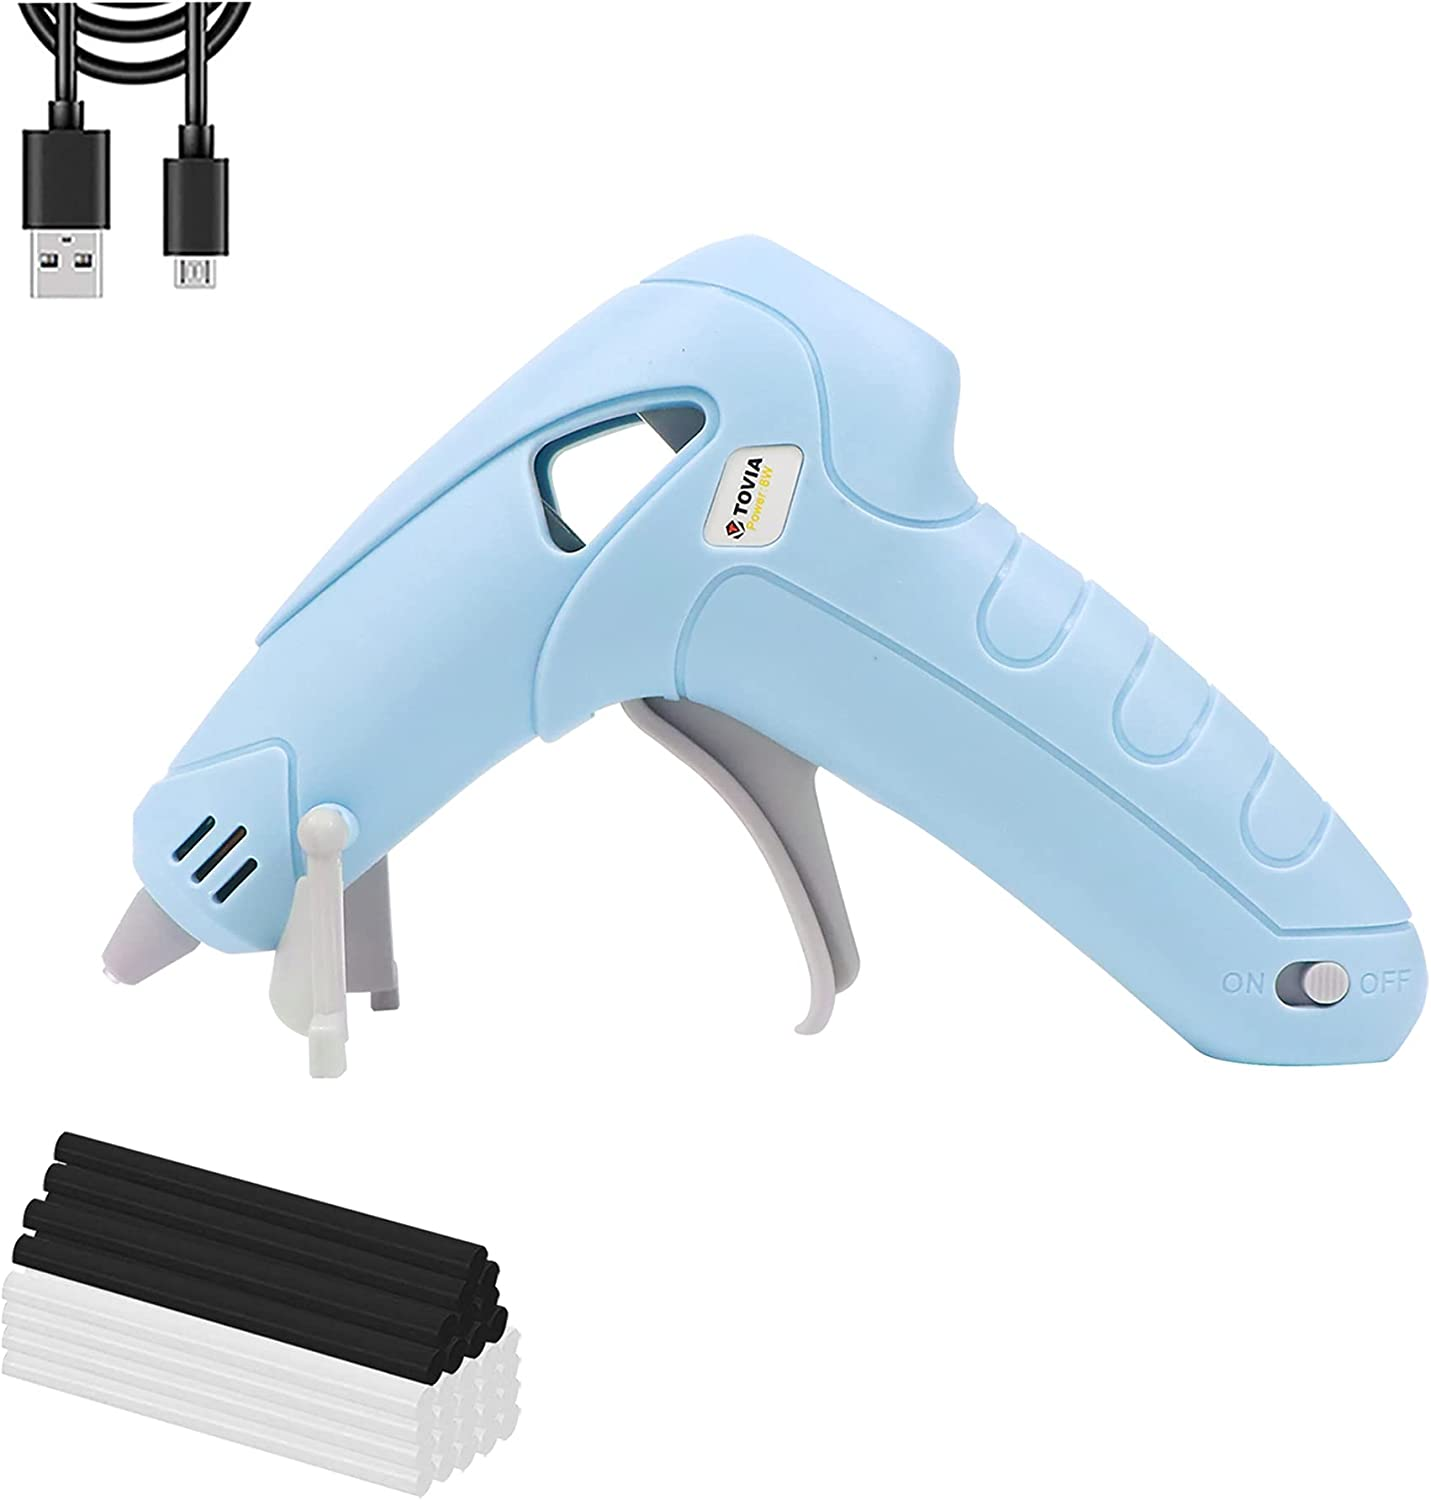 T TOVIA Wireless Hot Glue Gun, Battery Operated Mini Cordless Rechargeable Hot Melt Gun Kit with 30pcs Clear and Black Glue Sticks for Children Adults DIY Crafts, Home Decoration, Daily Repairs(Blue)